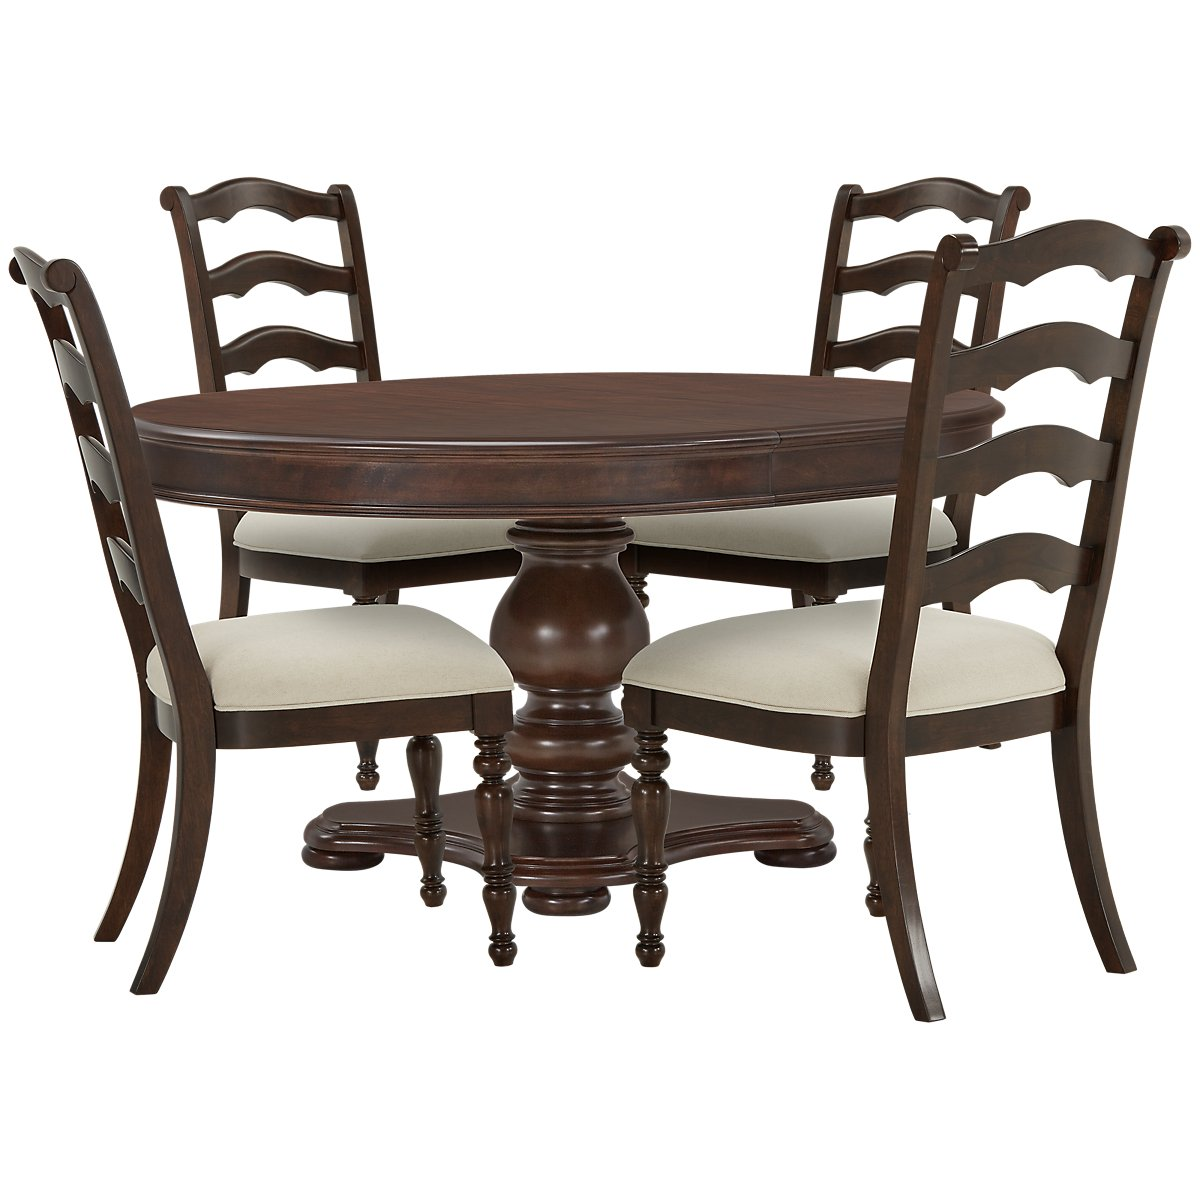 Savannah Dark Tone Round Table & 4 Chairs